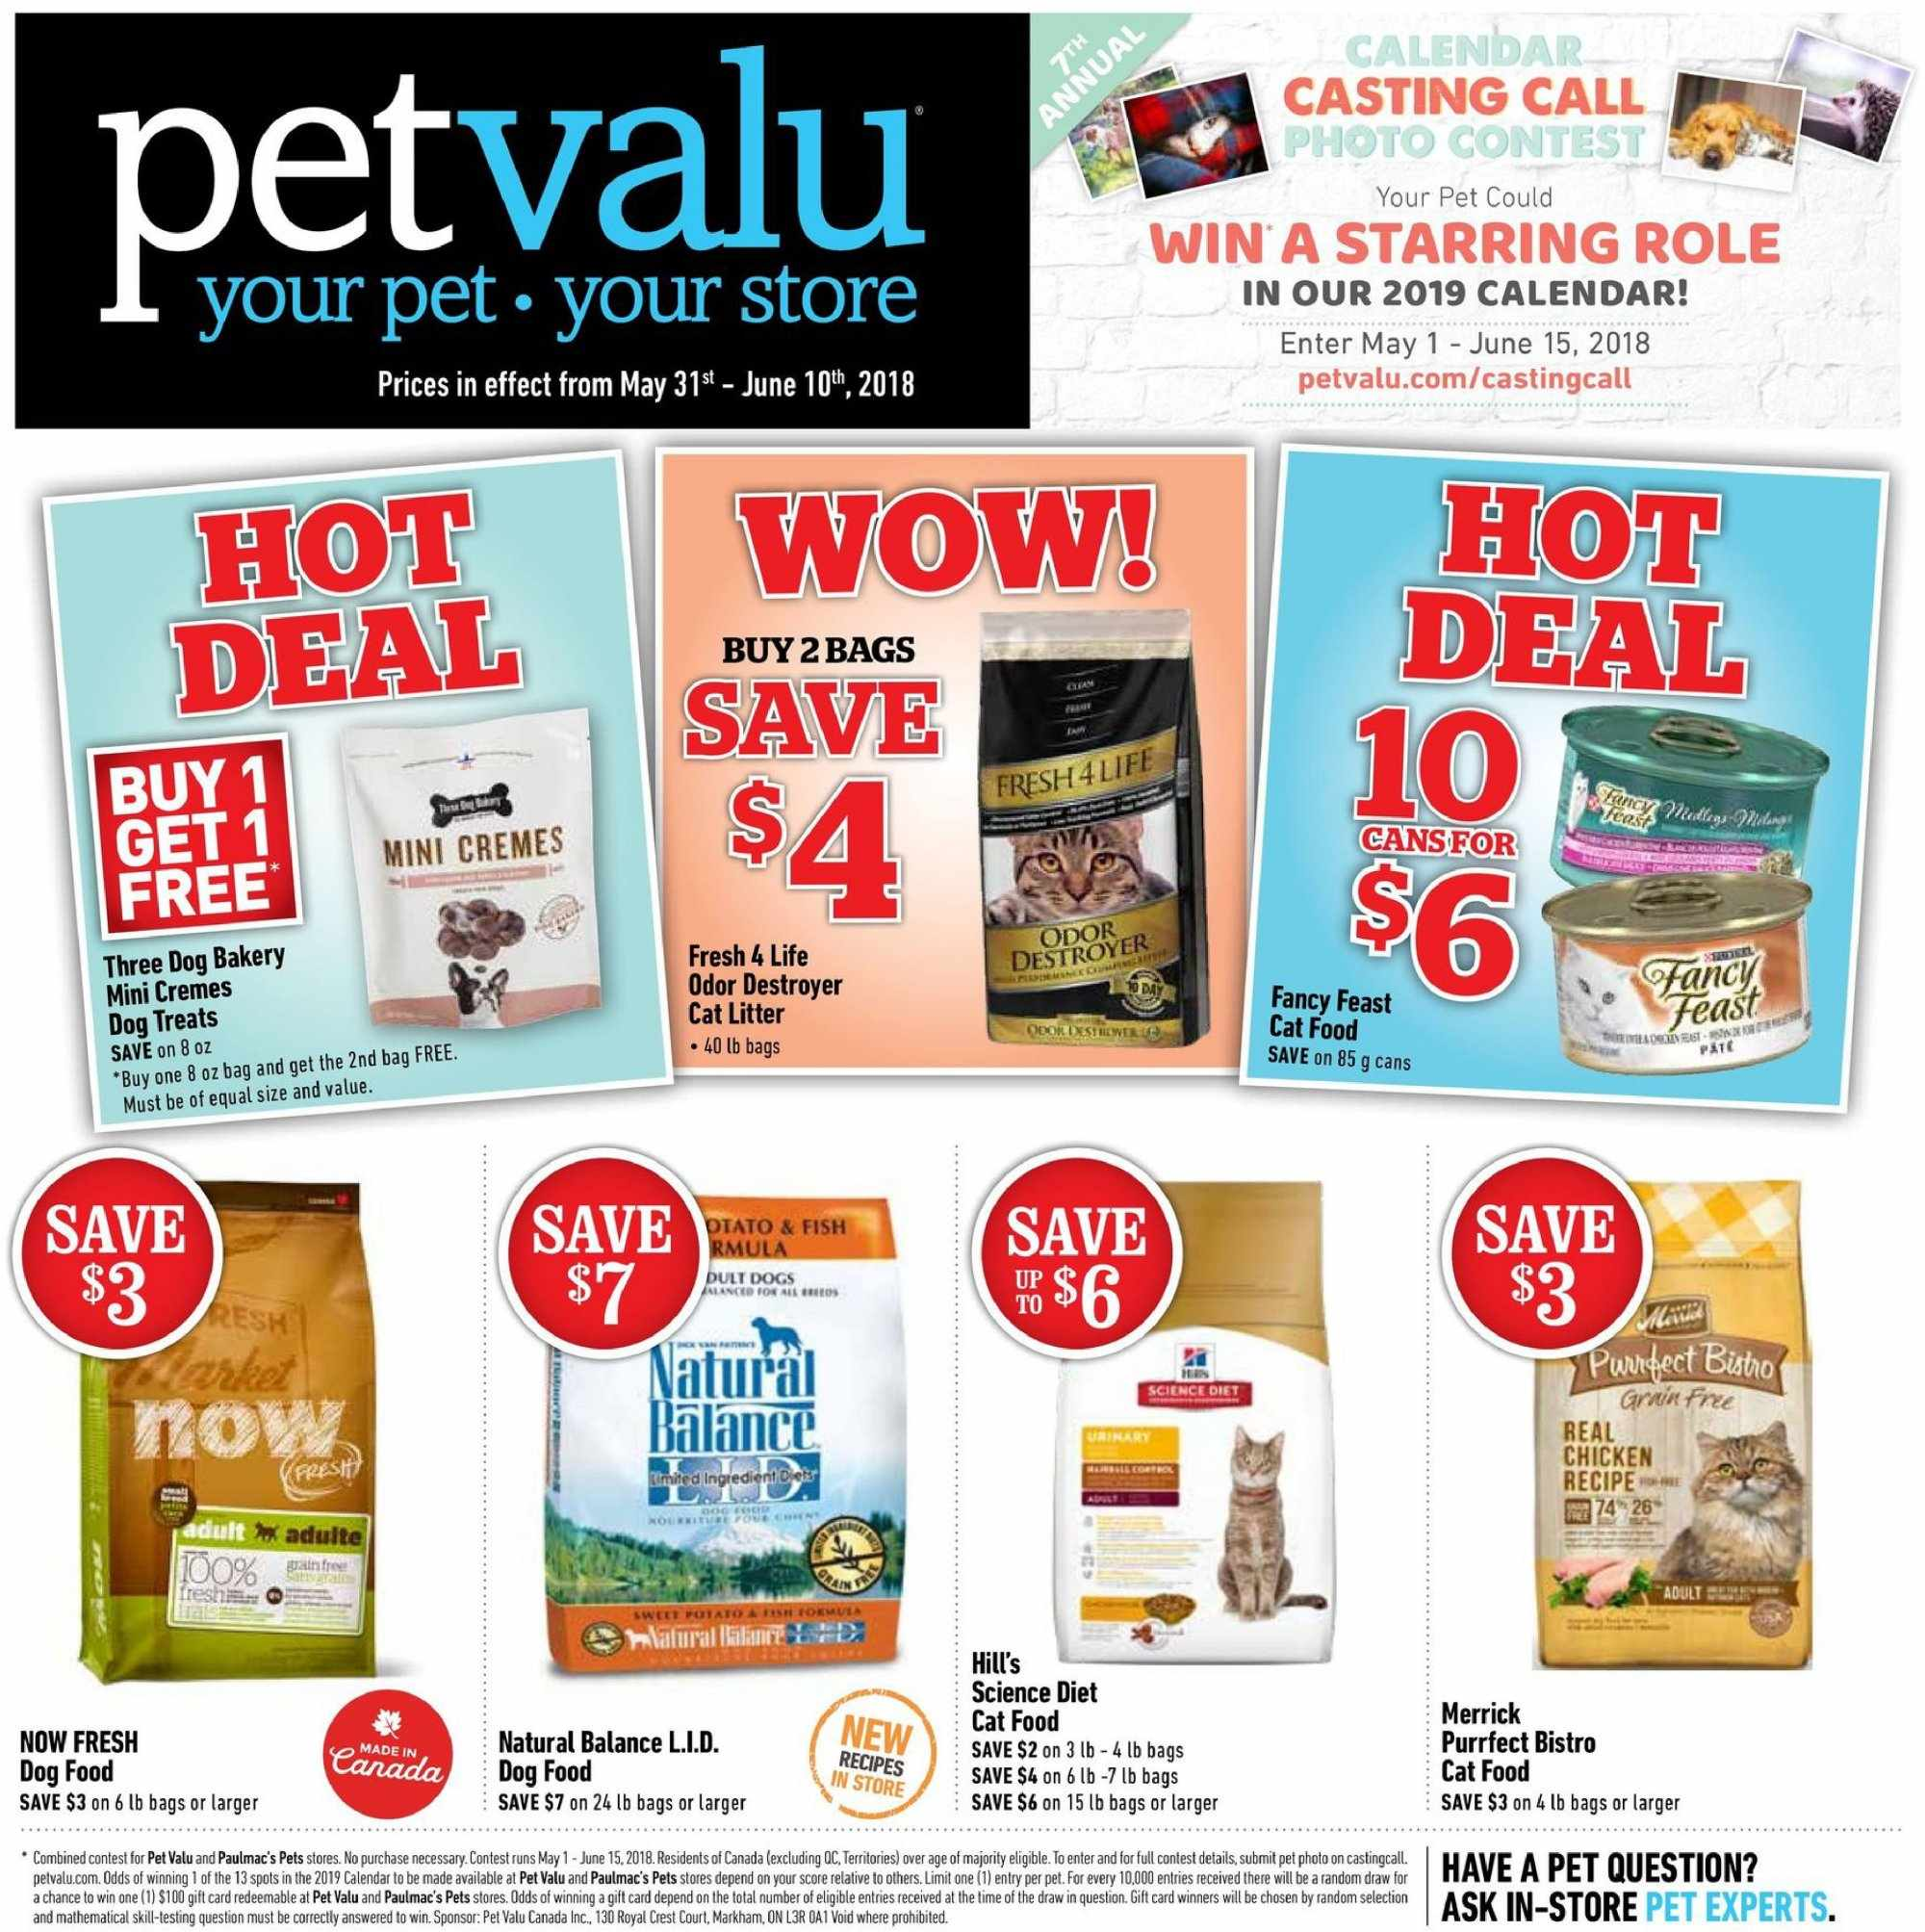 Pet Valu Flyer - May 31, 2018 - June 10, 2018 - Sales products - animal food, bag, calendar, cat food, cat litter, dog food, litter, merrick, science diet, pet, chicken, photo. Page 1.